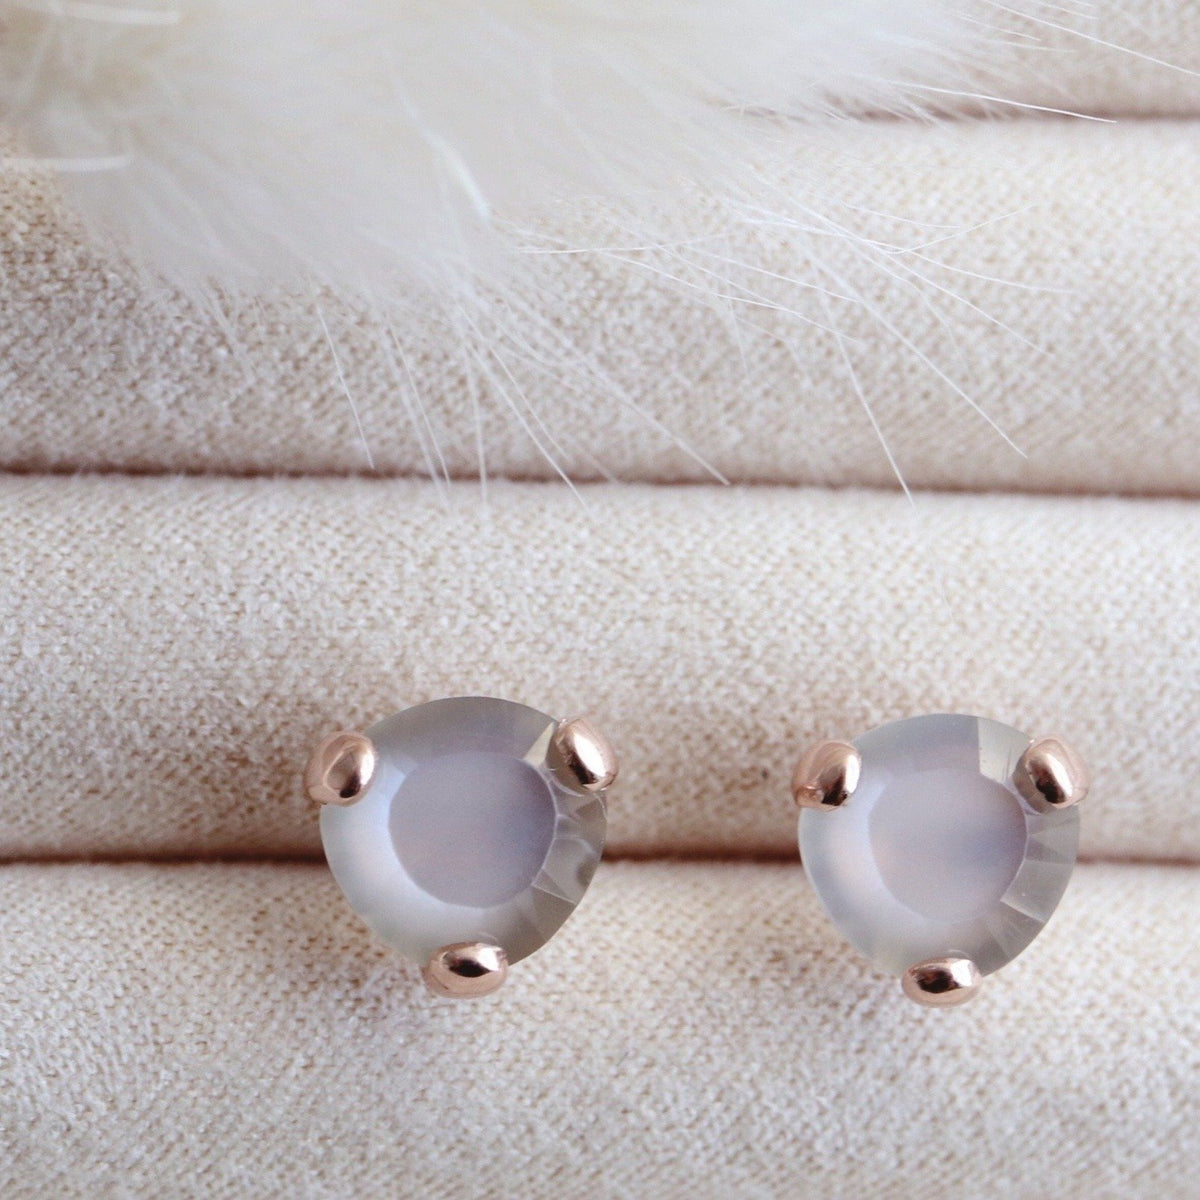 MINI FEARLESS STUDS - GREY MOONSTONE & ROSE GOLD - SO PRETTY CARA COTTER